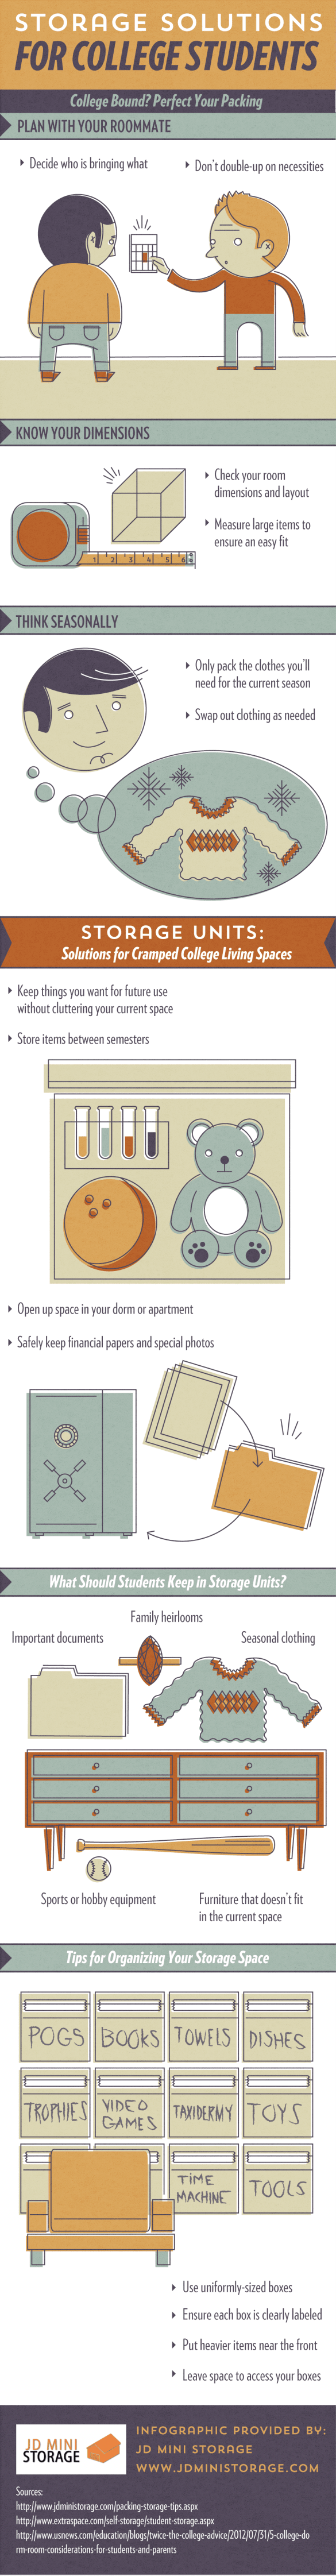 Storage Solutions for College Students [INFOGRAPHIC]